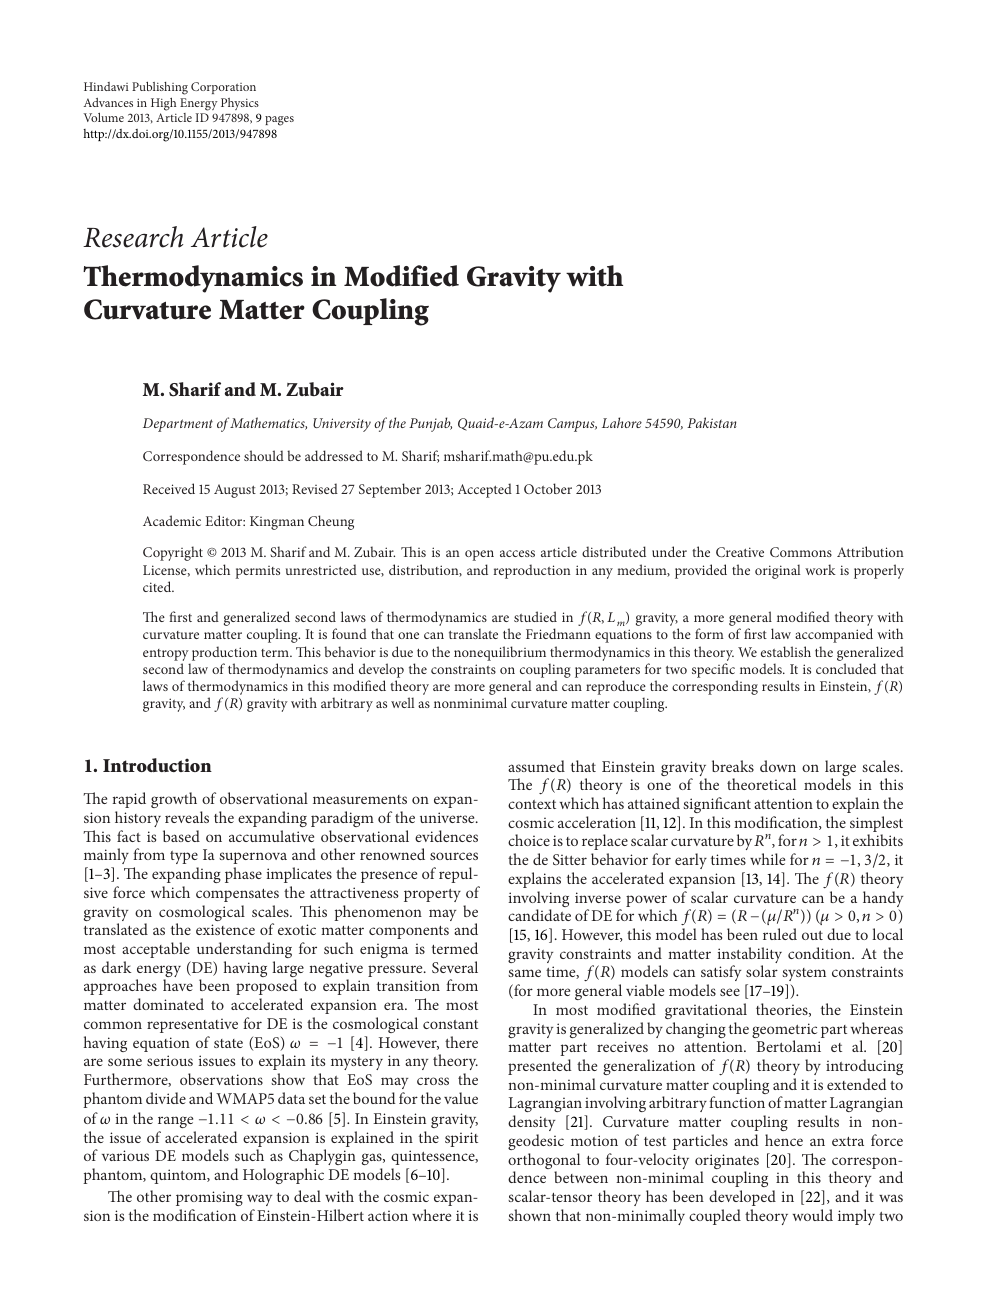 research paper on gravity